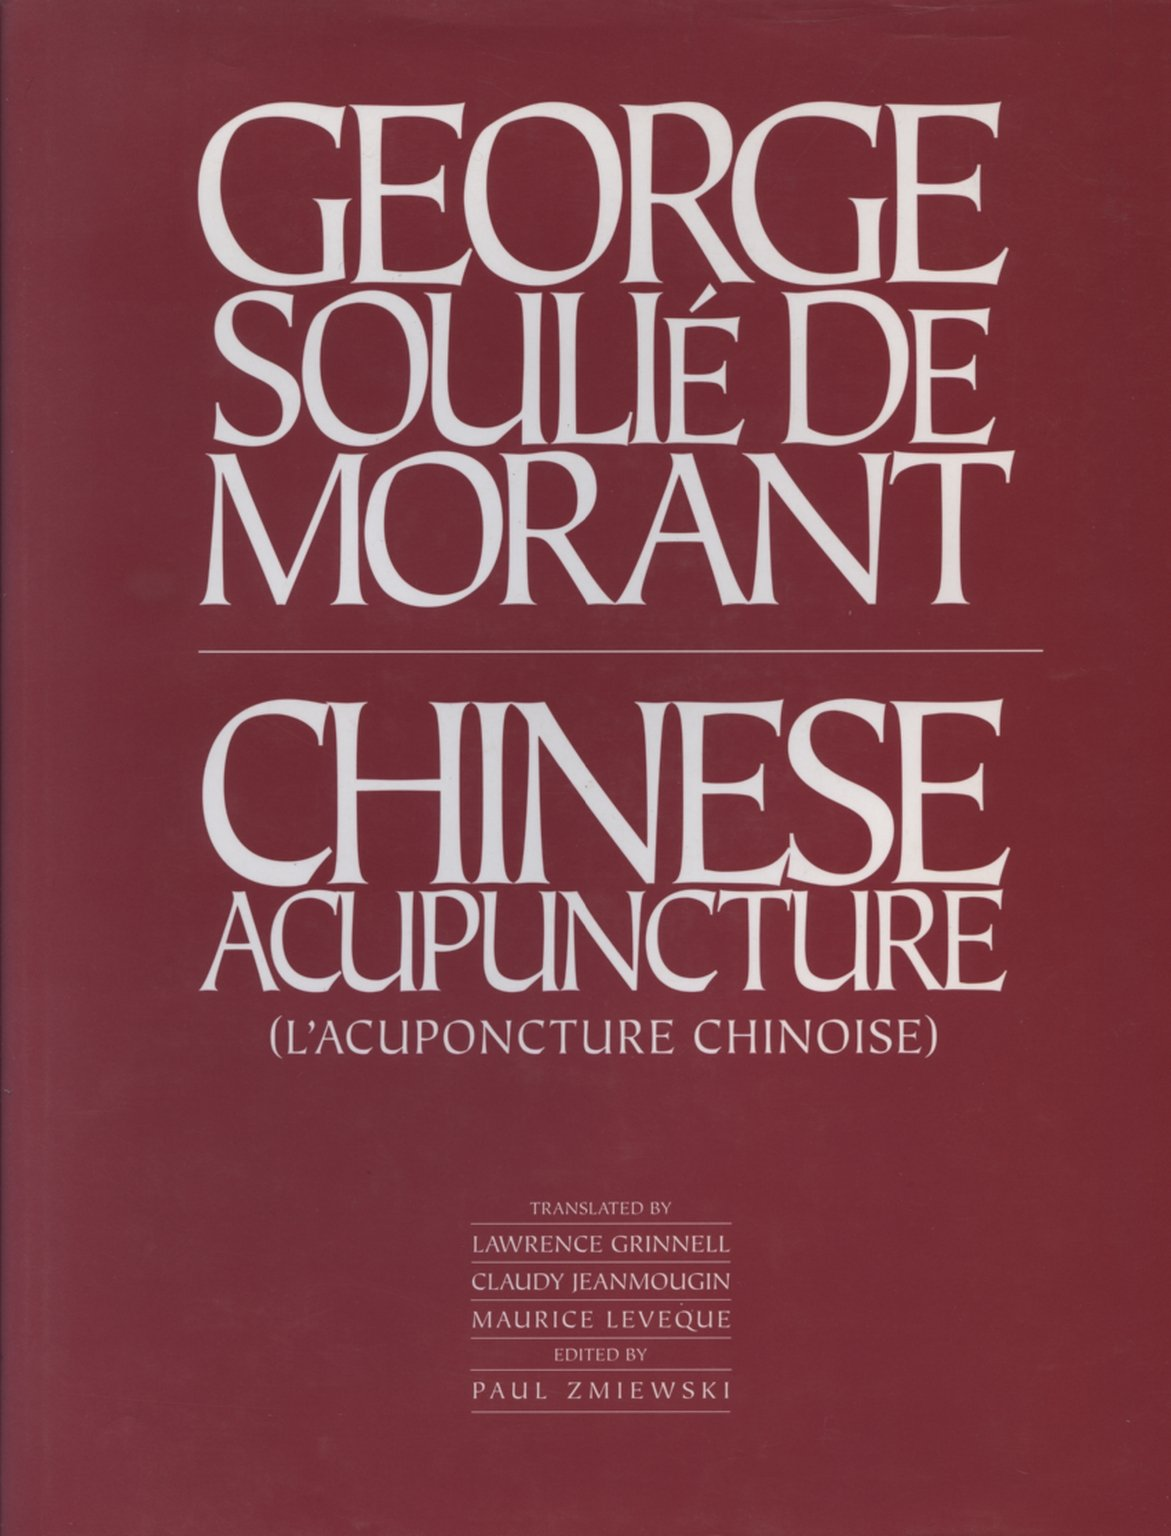 Chinese Acupuncture and Moxibustion (Italian) Hardcover – 1987